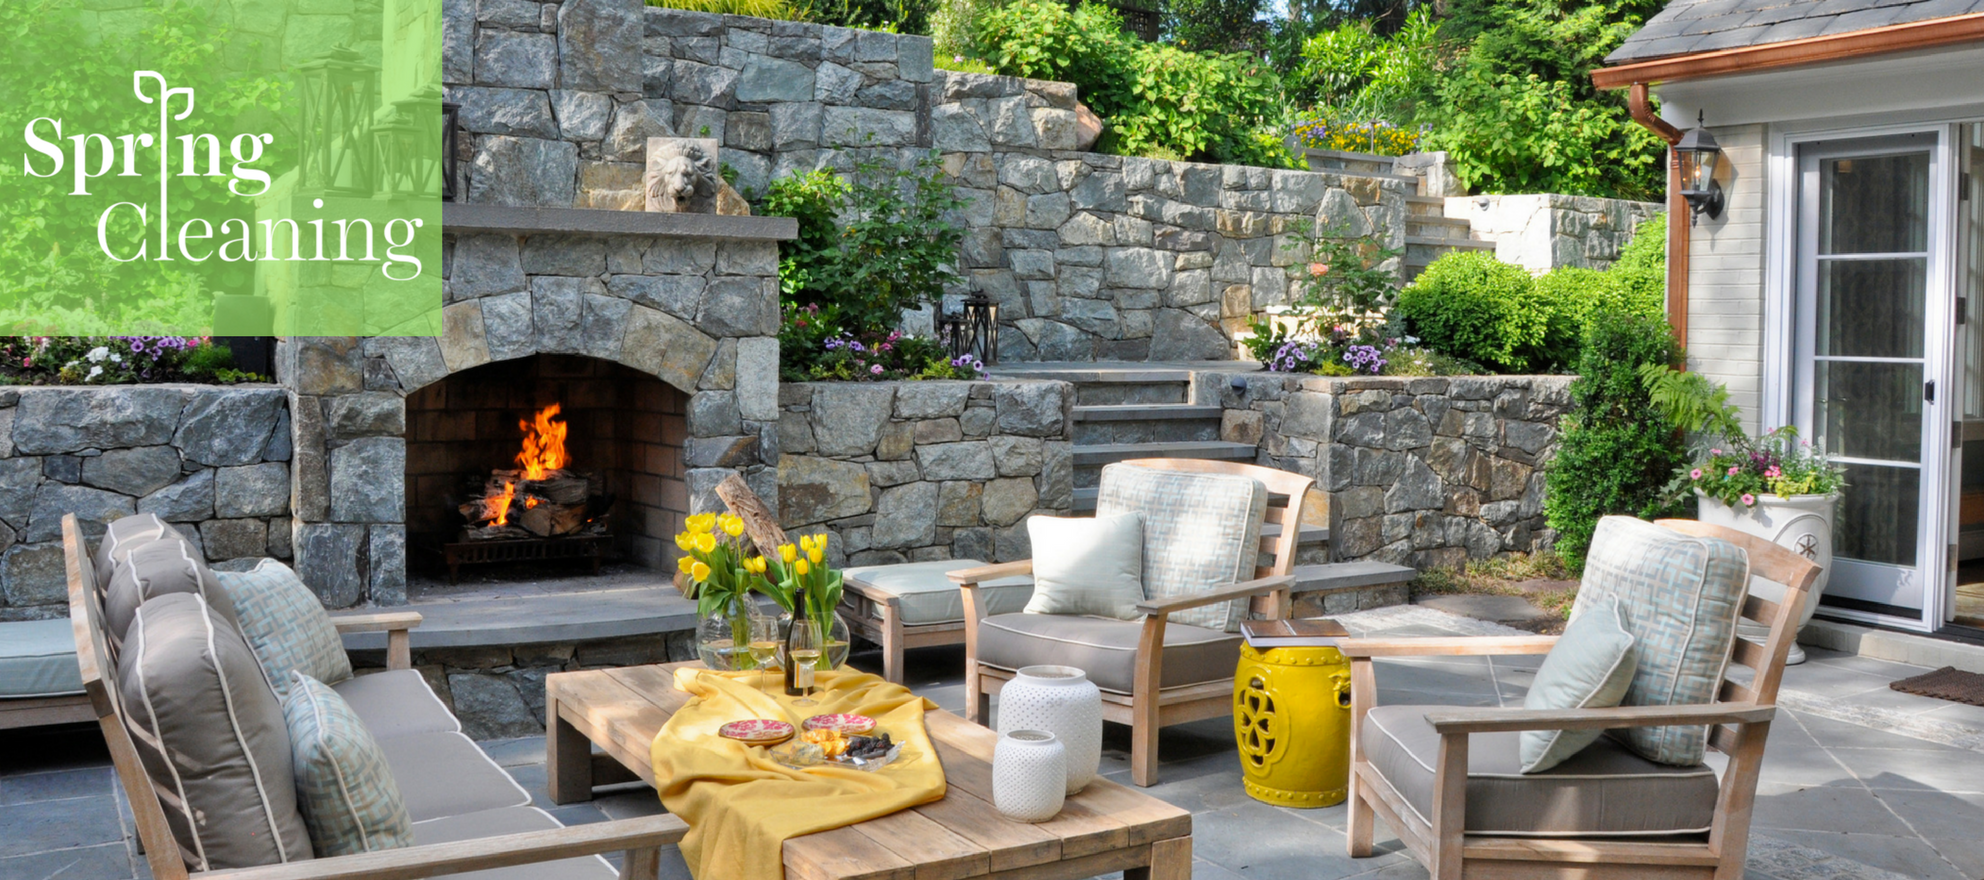 Houzz Reveals The Hottest Outdoor Spring Renovations